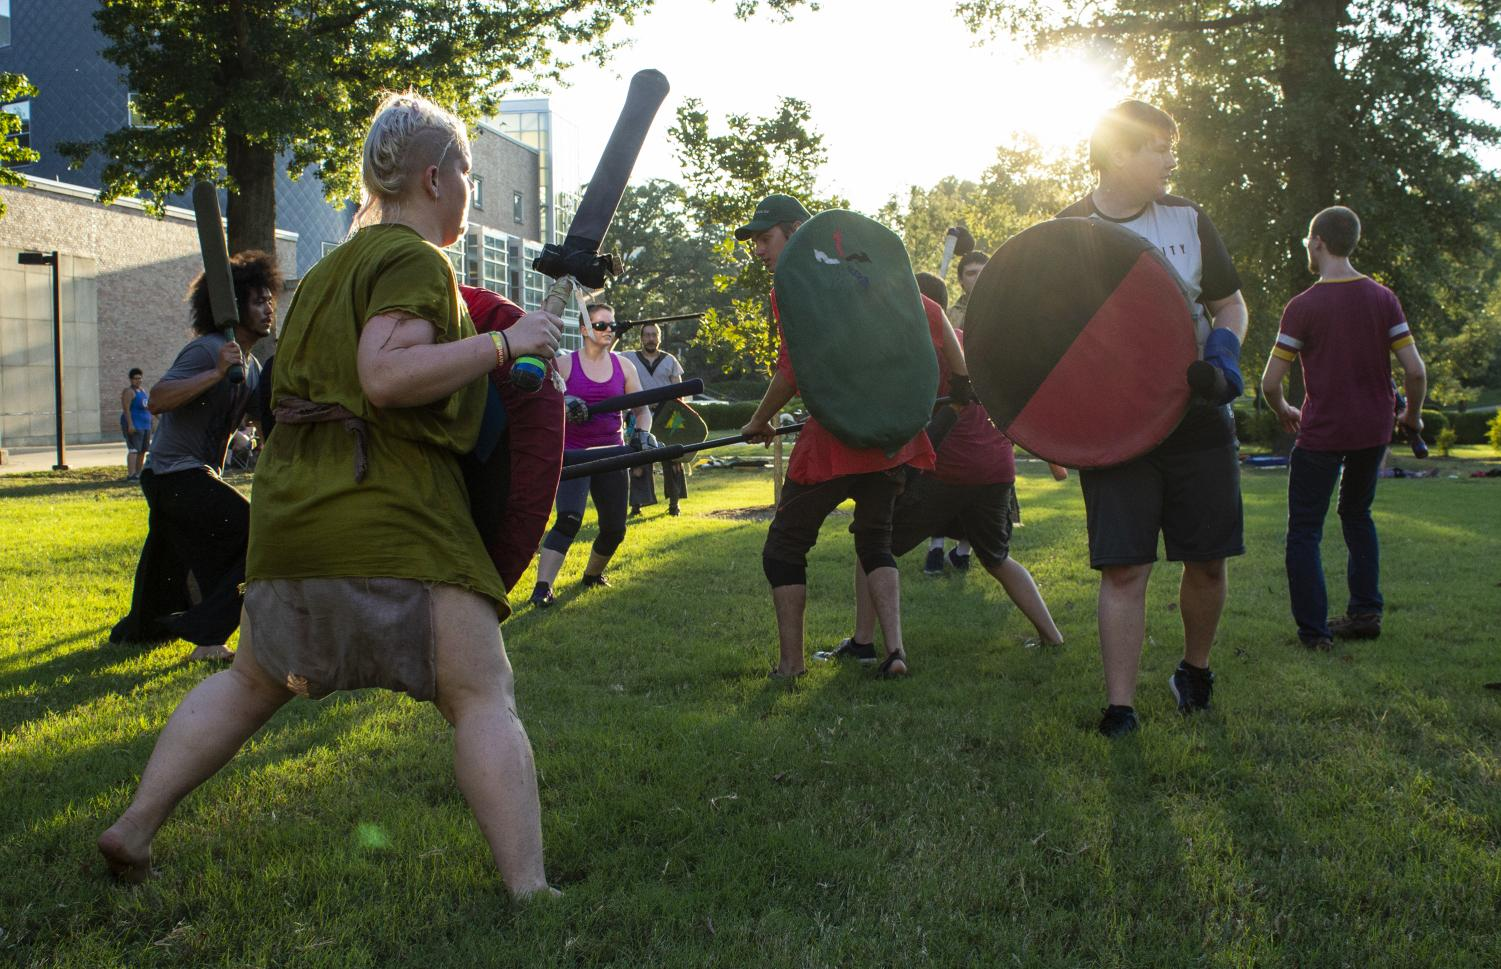 Members of SIU's Medieval Combat Club battle in front of Morris Library, on Tuesday, Sept. 4, 2018. (Carson VanBuskirk | @carsonvanbDE)